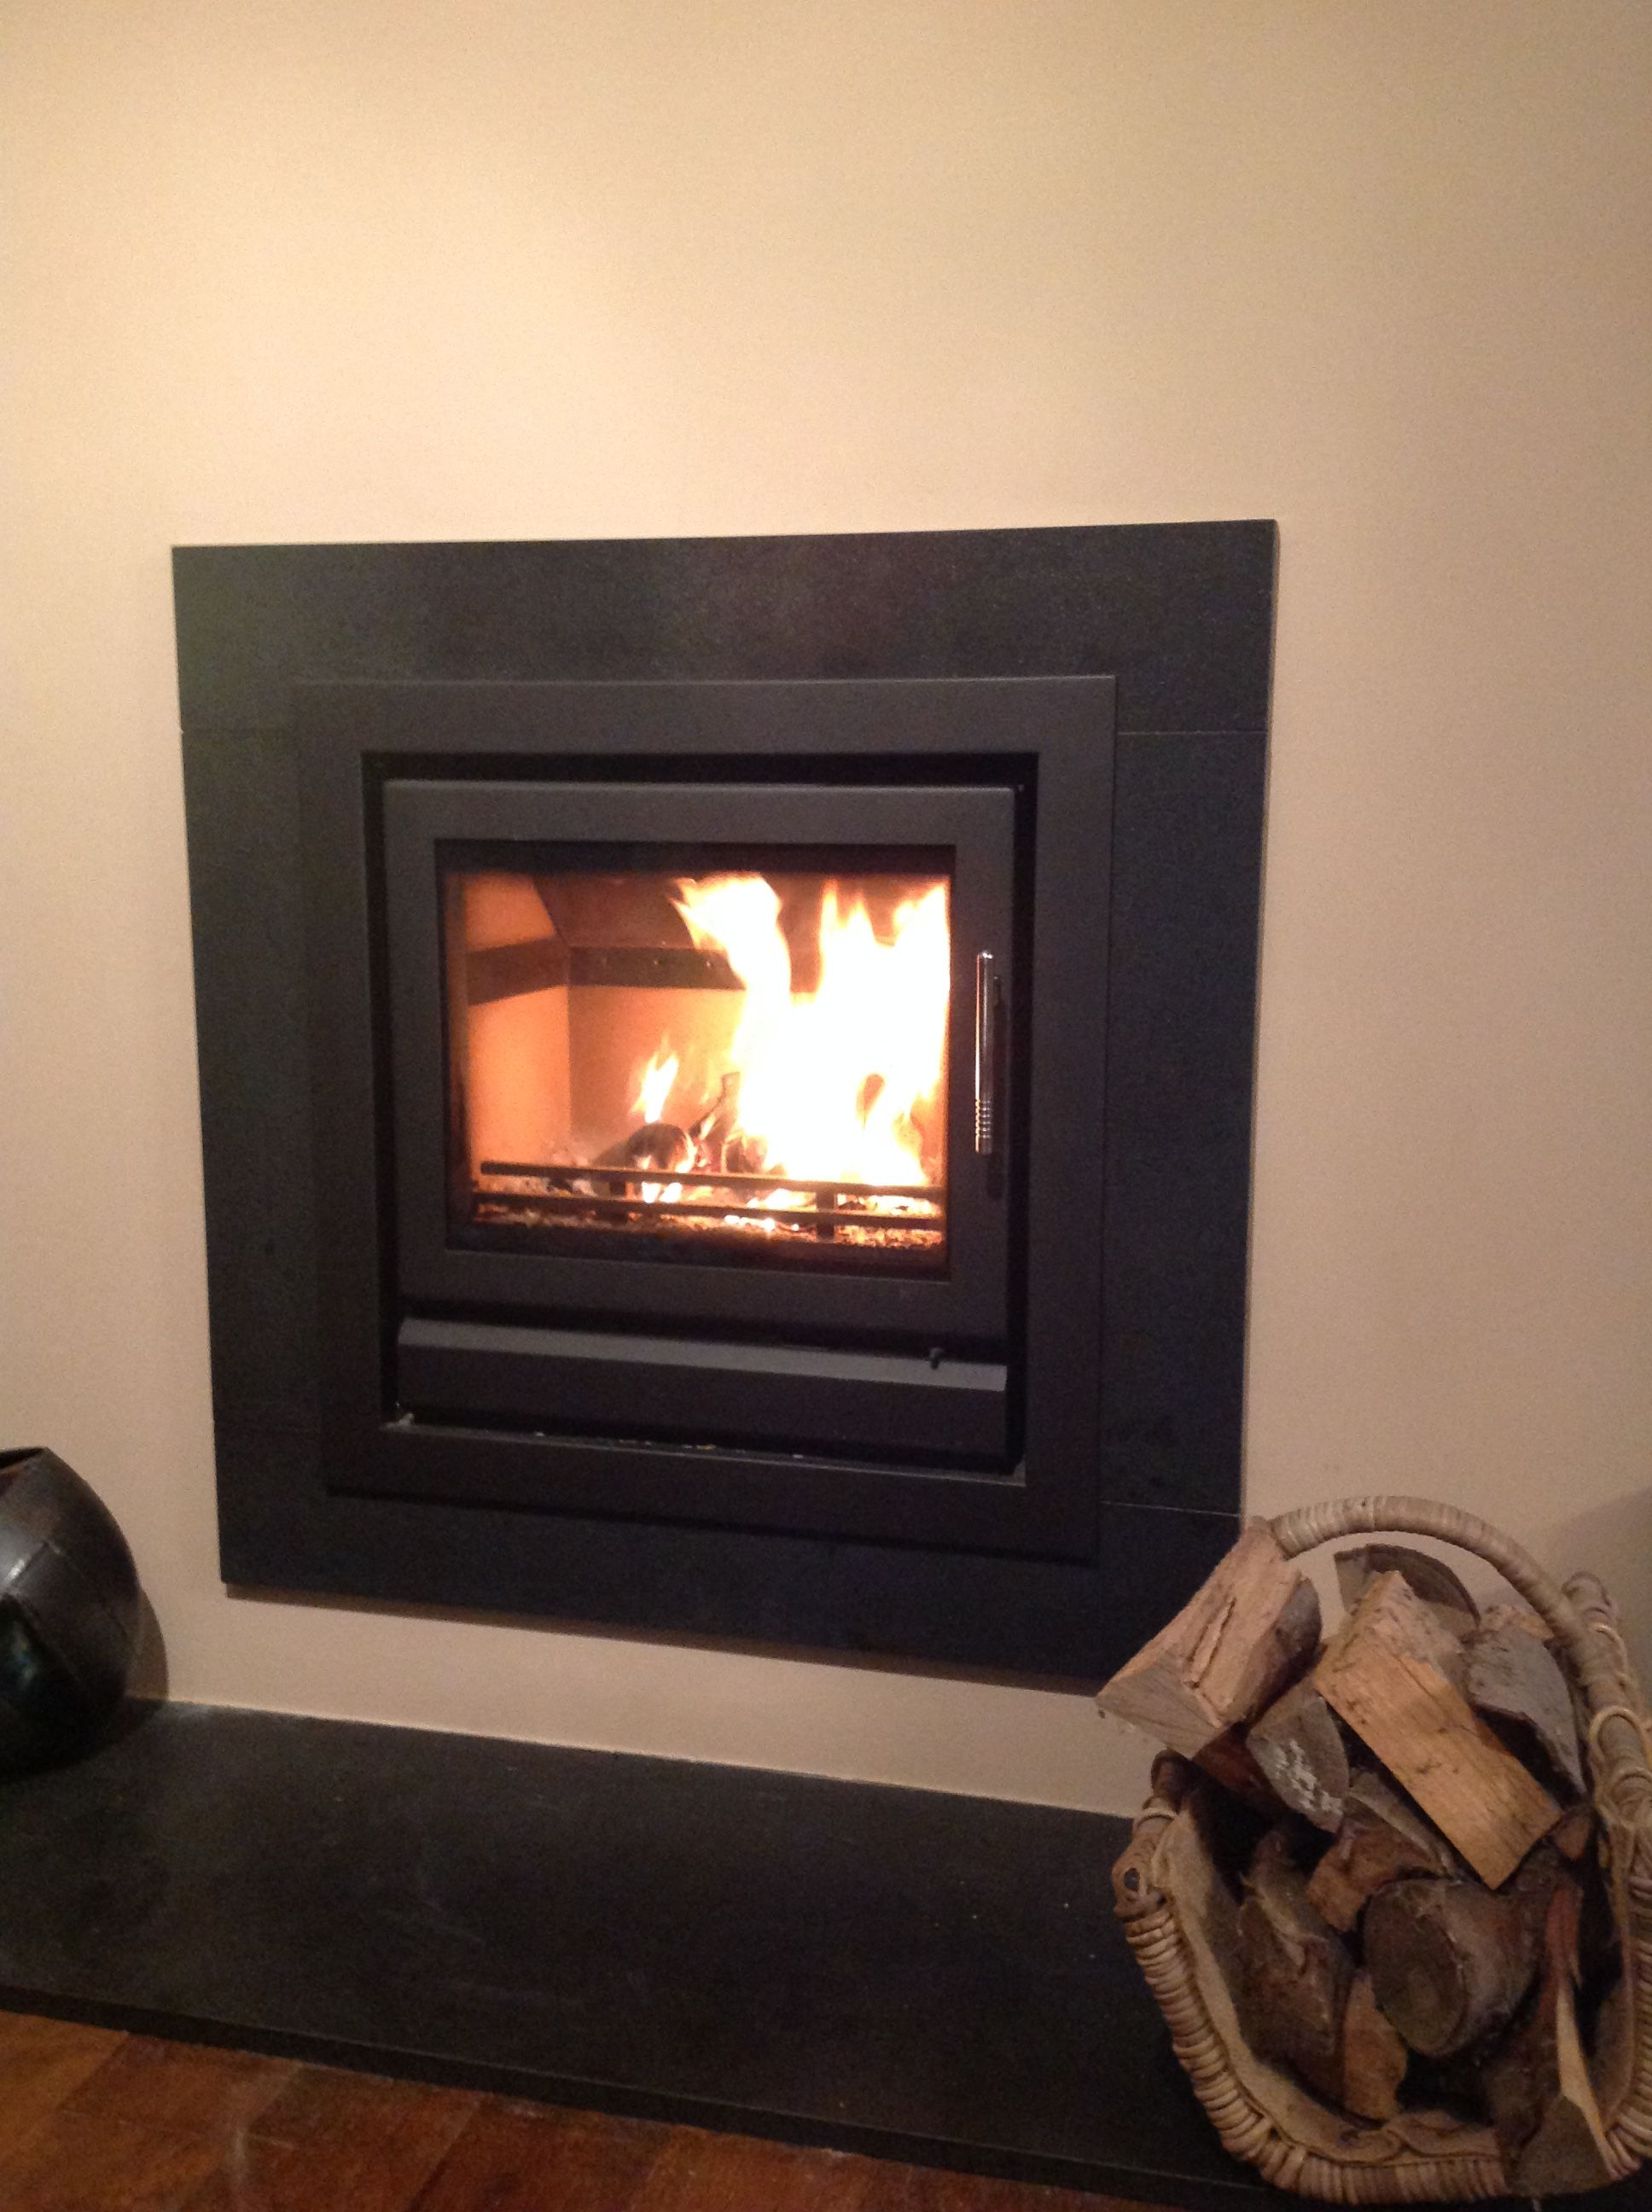 Contemporary hole-in-the-wall log burner which we fitted with a honed granite surround and matching hearth